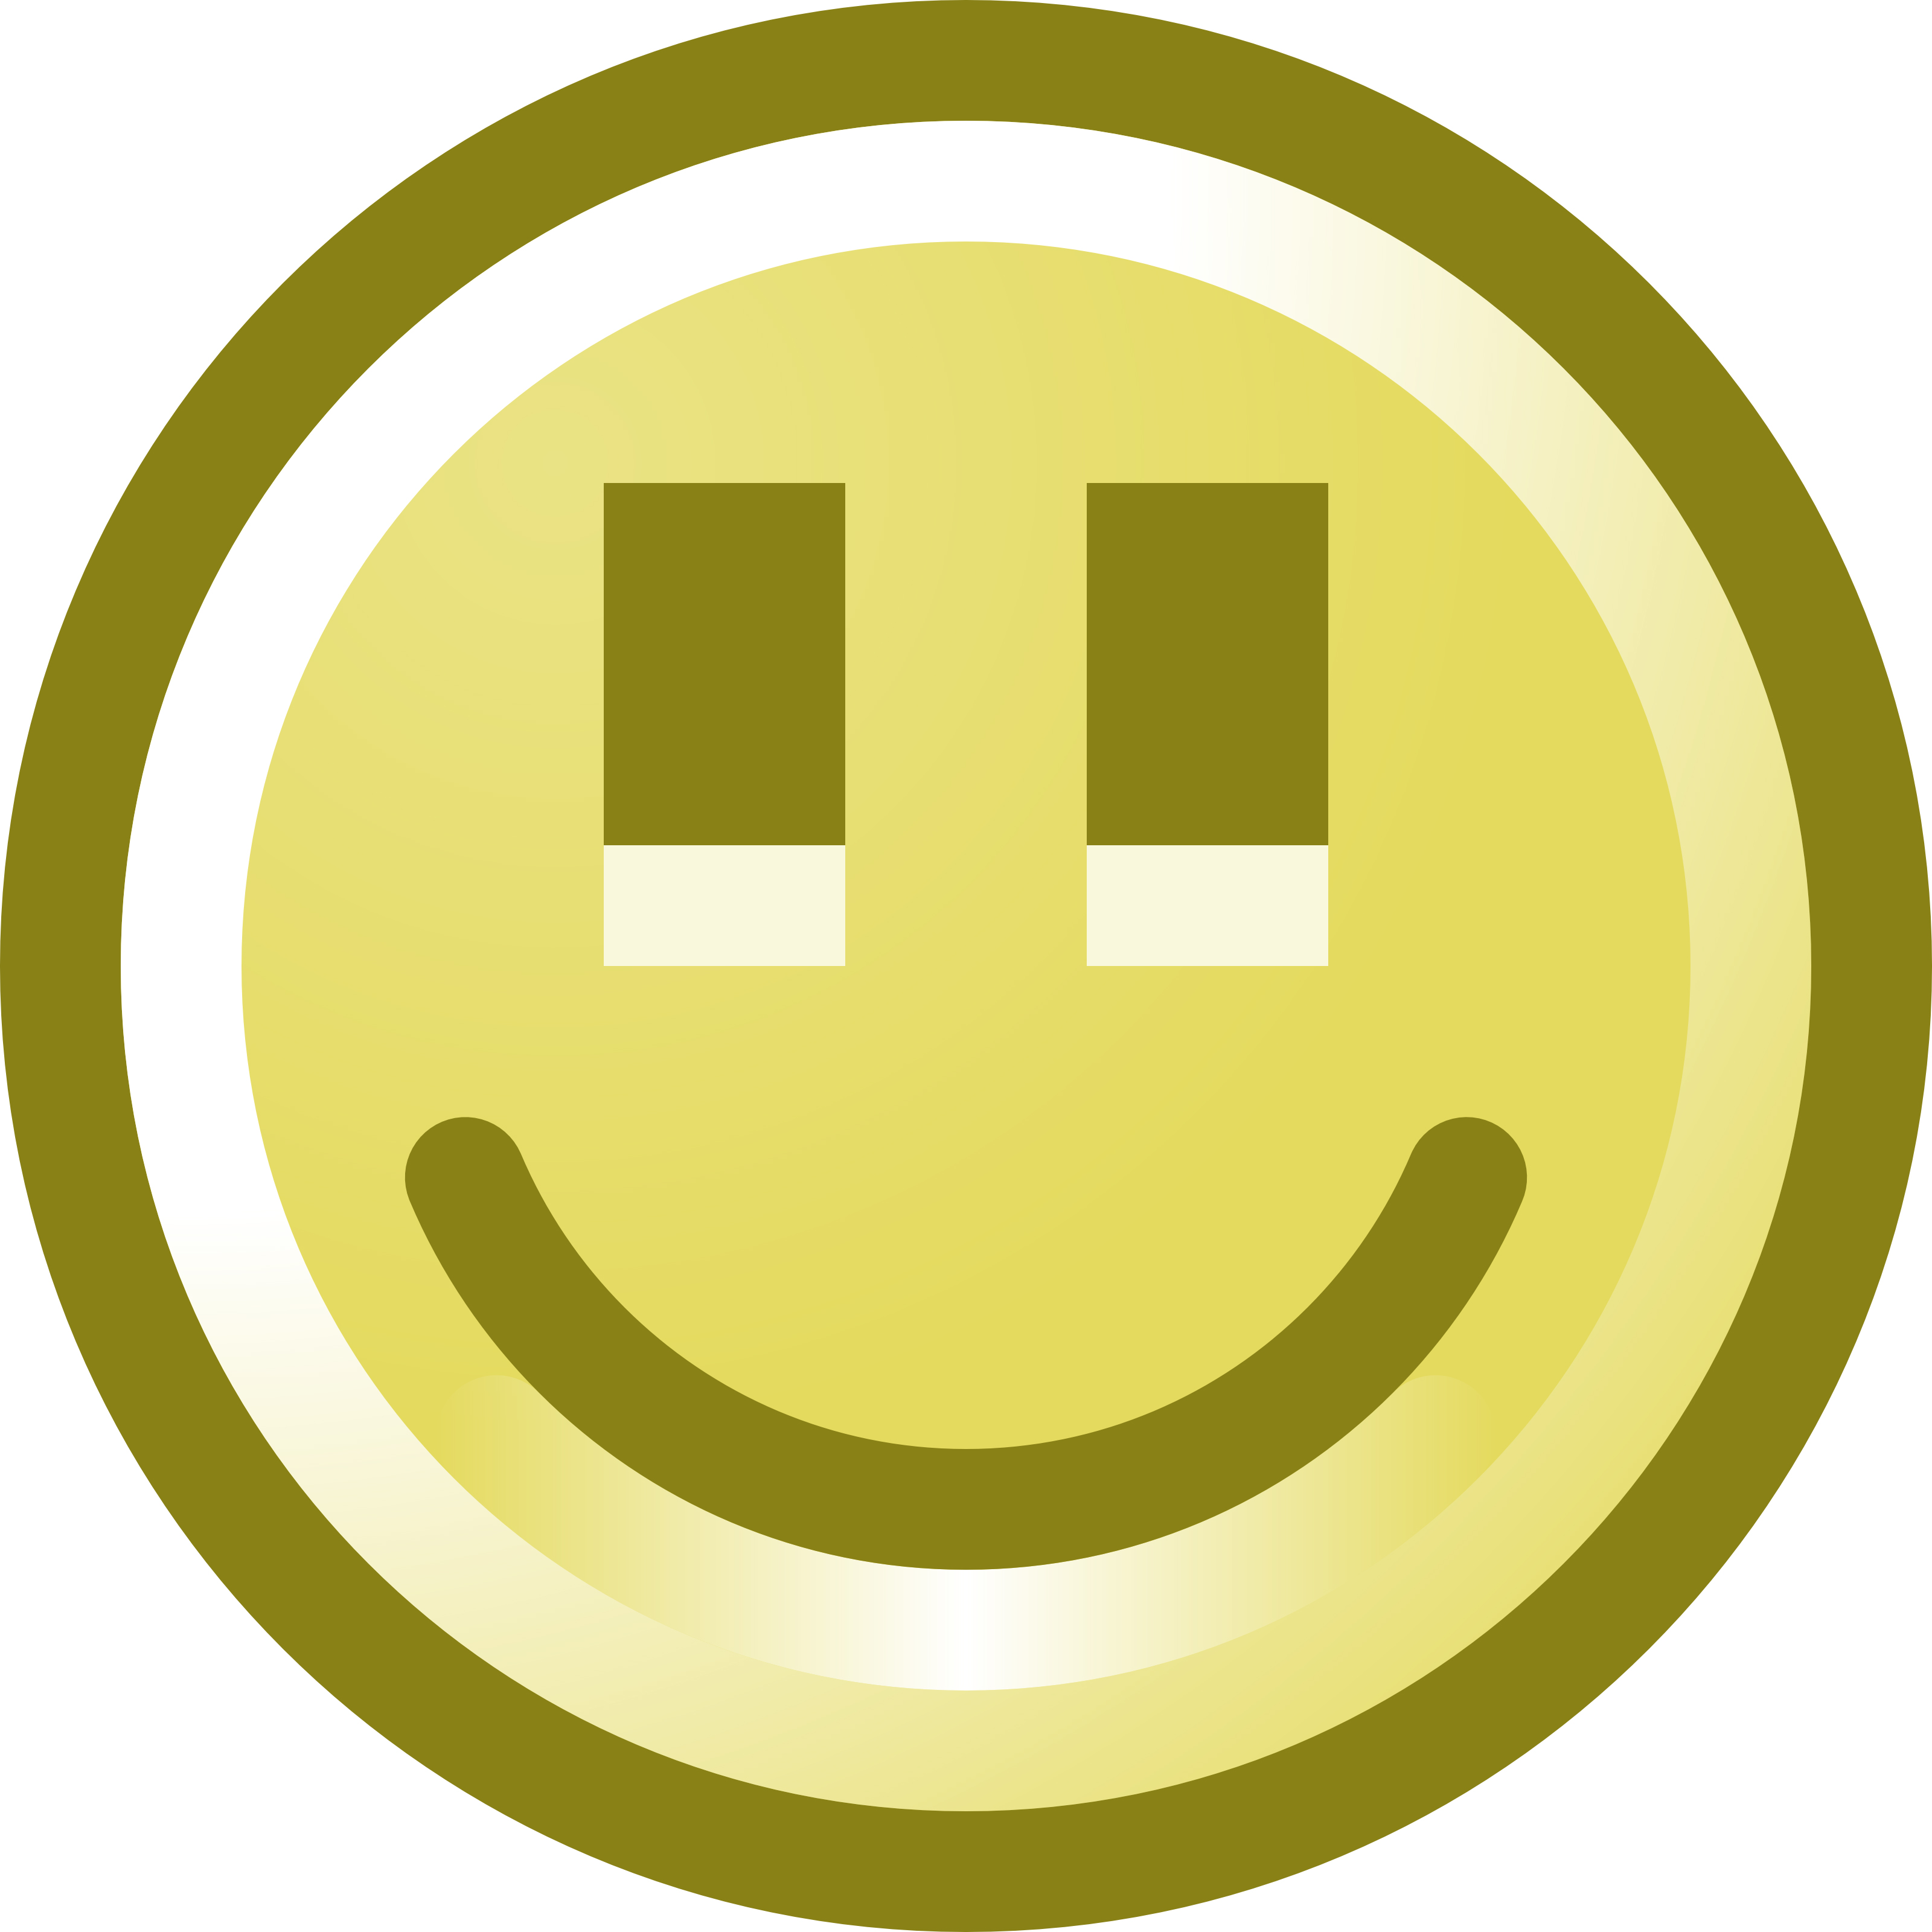 3200x3200 Smile Images Free